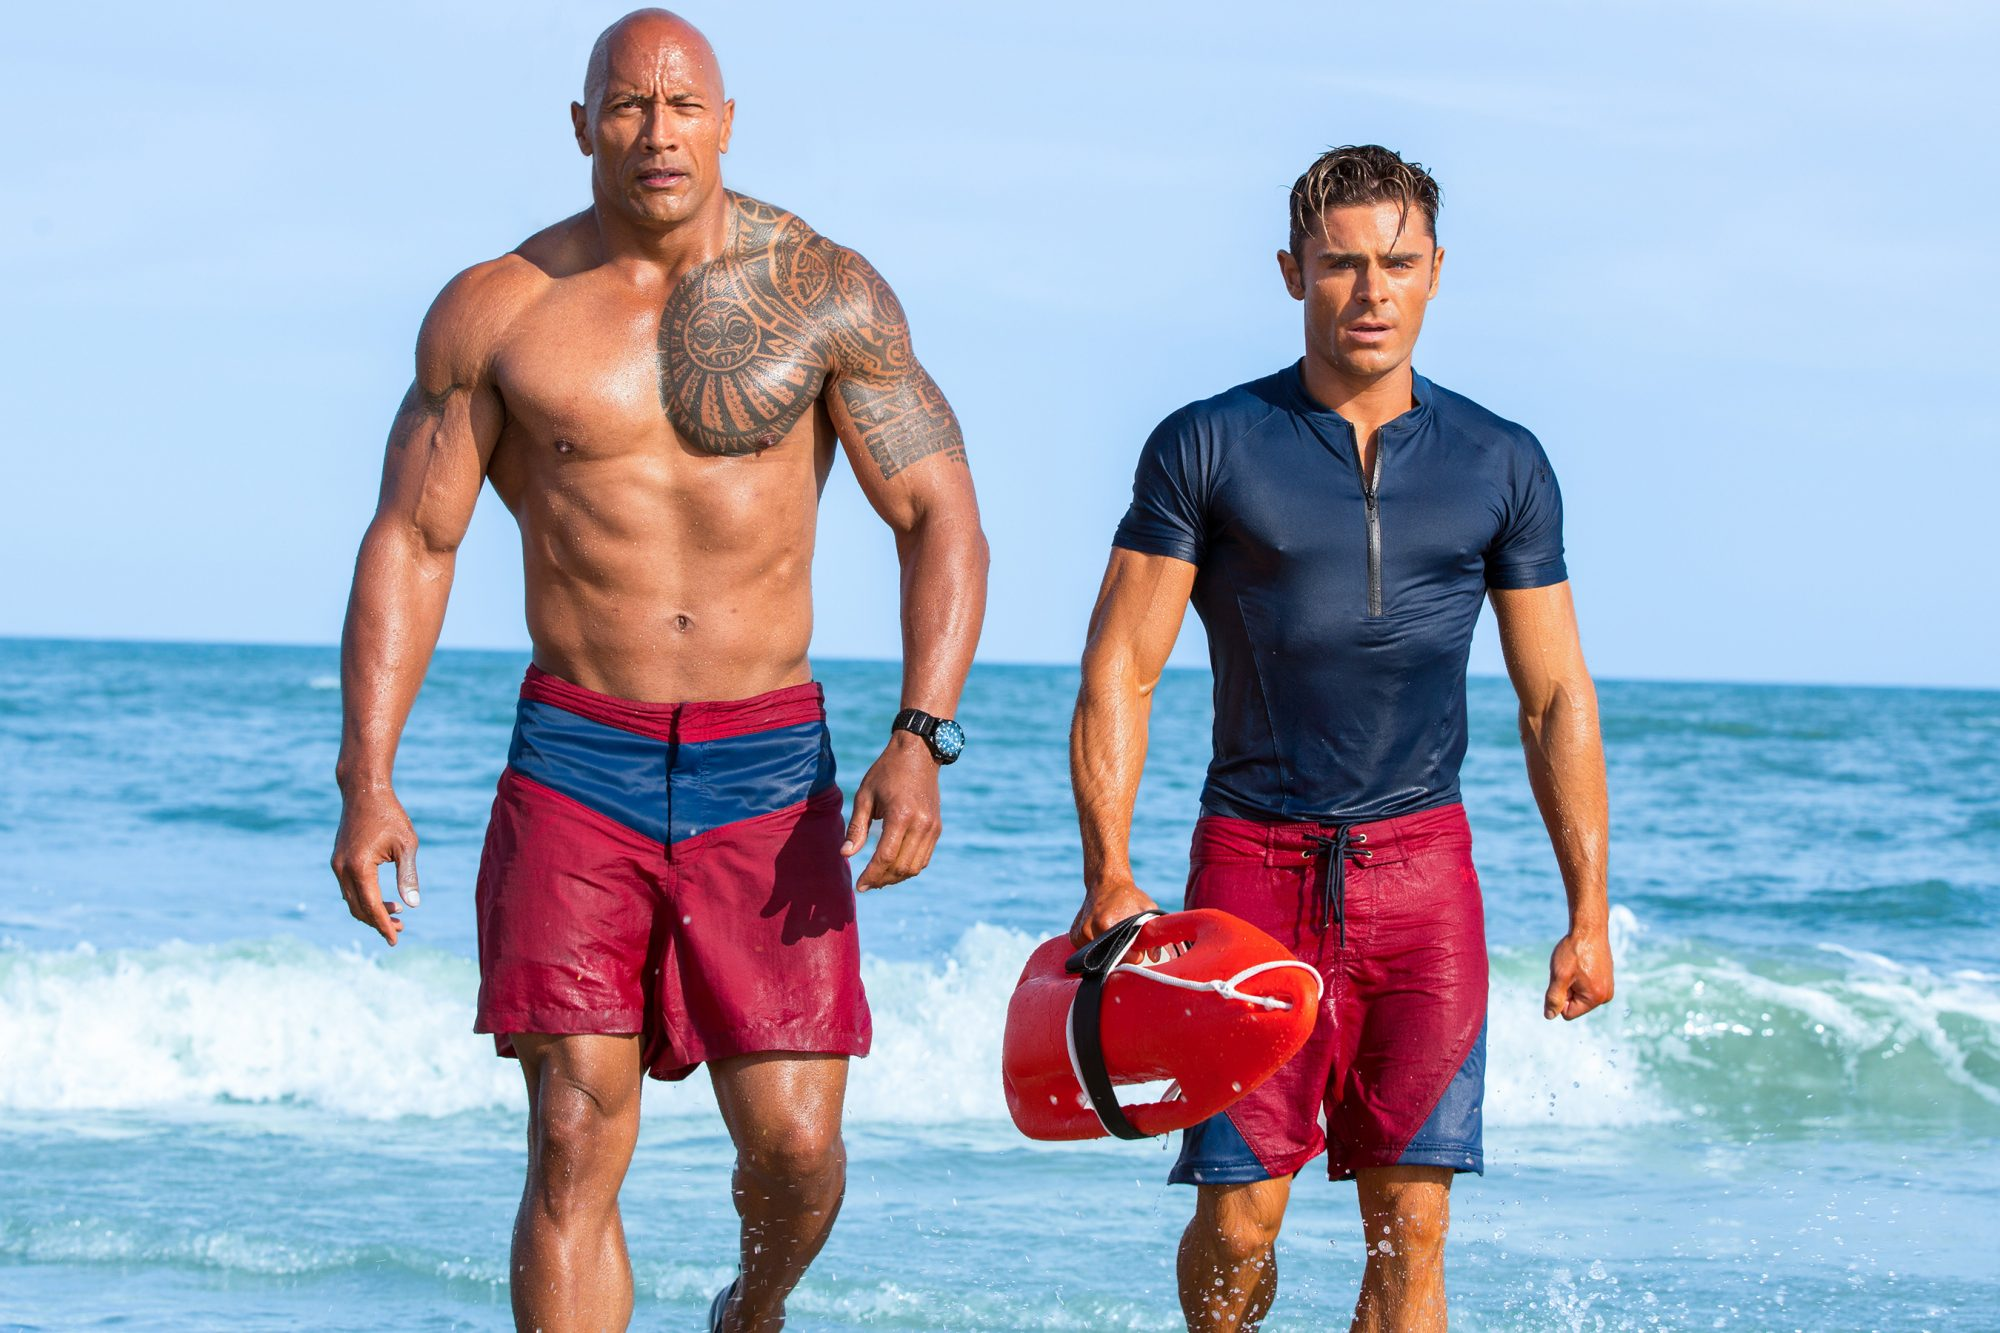 Dwayne Johnson and Zac Efron (Baywatch, out May 25)